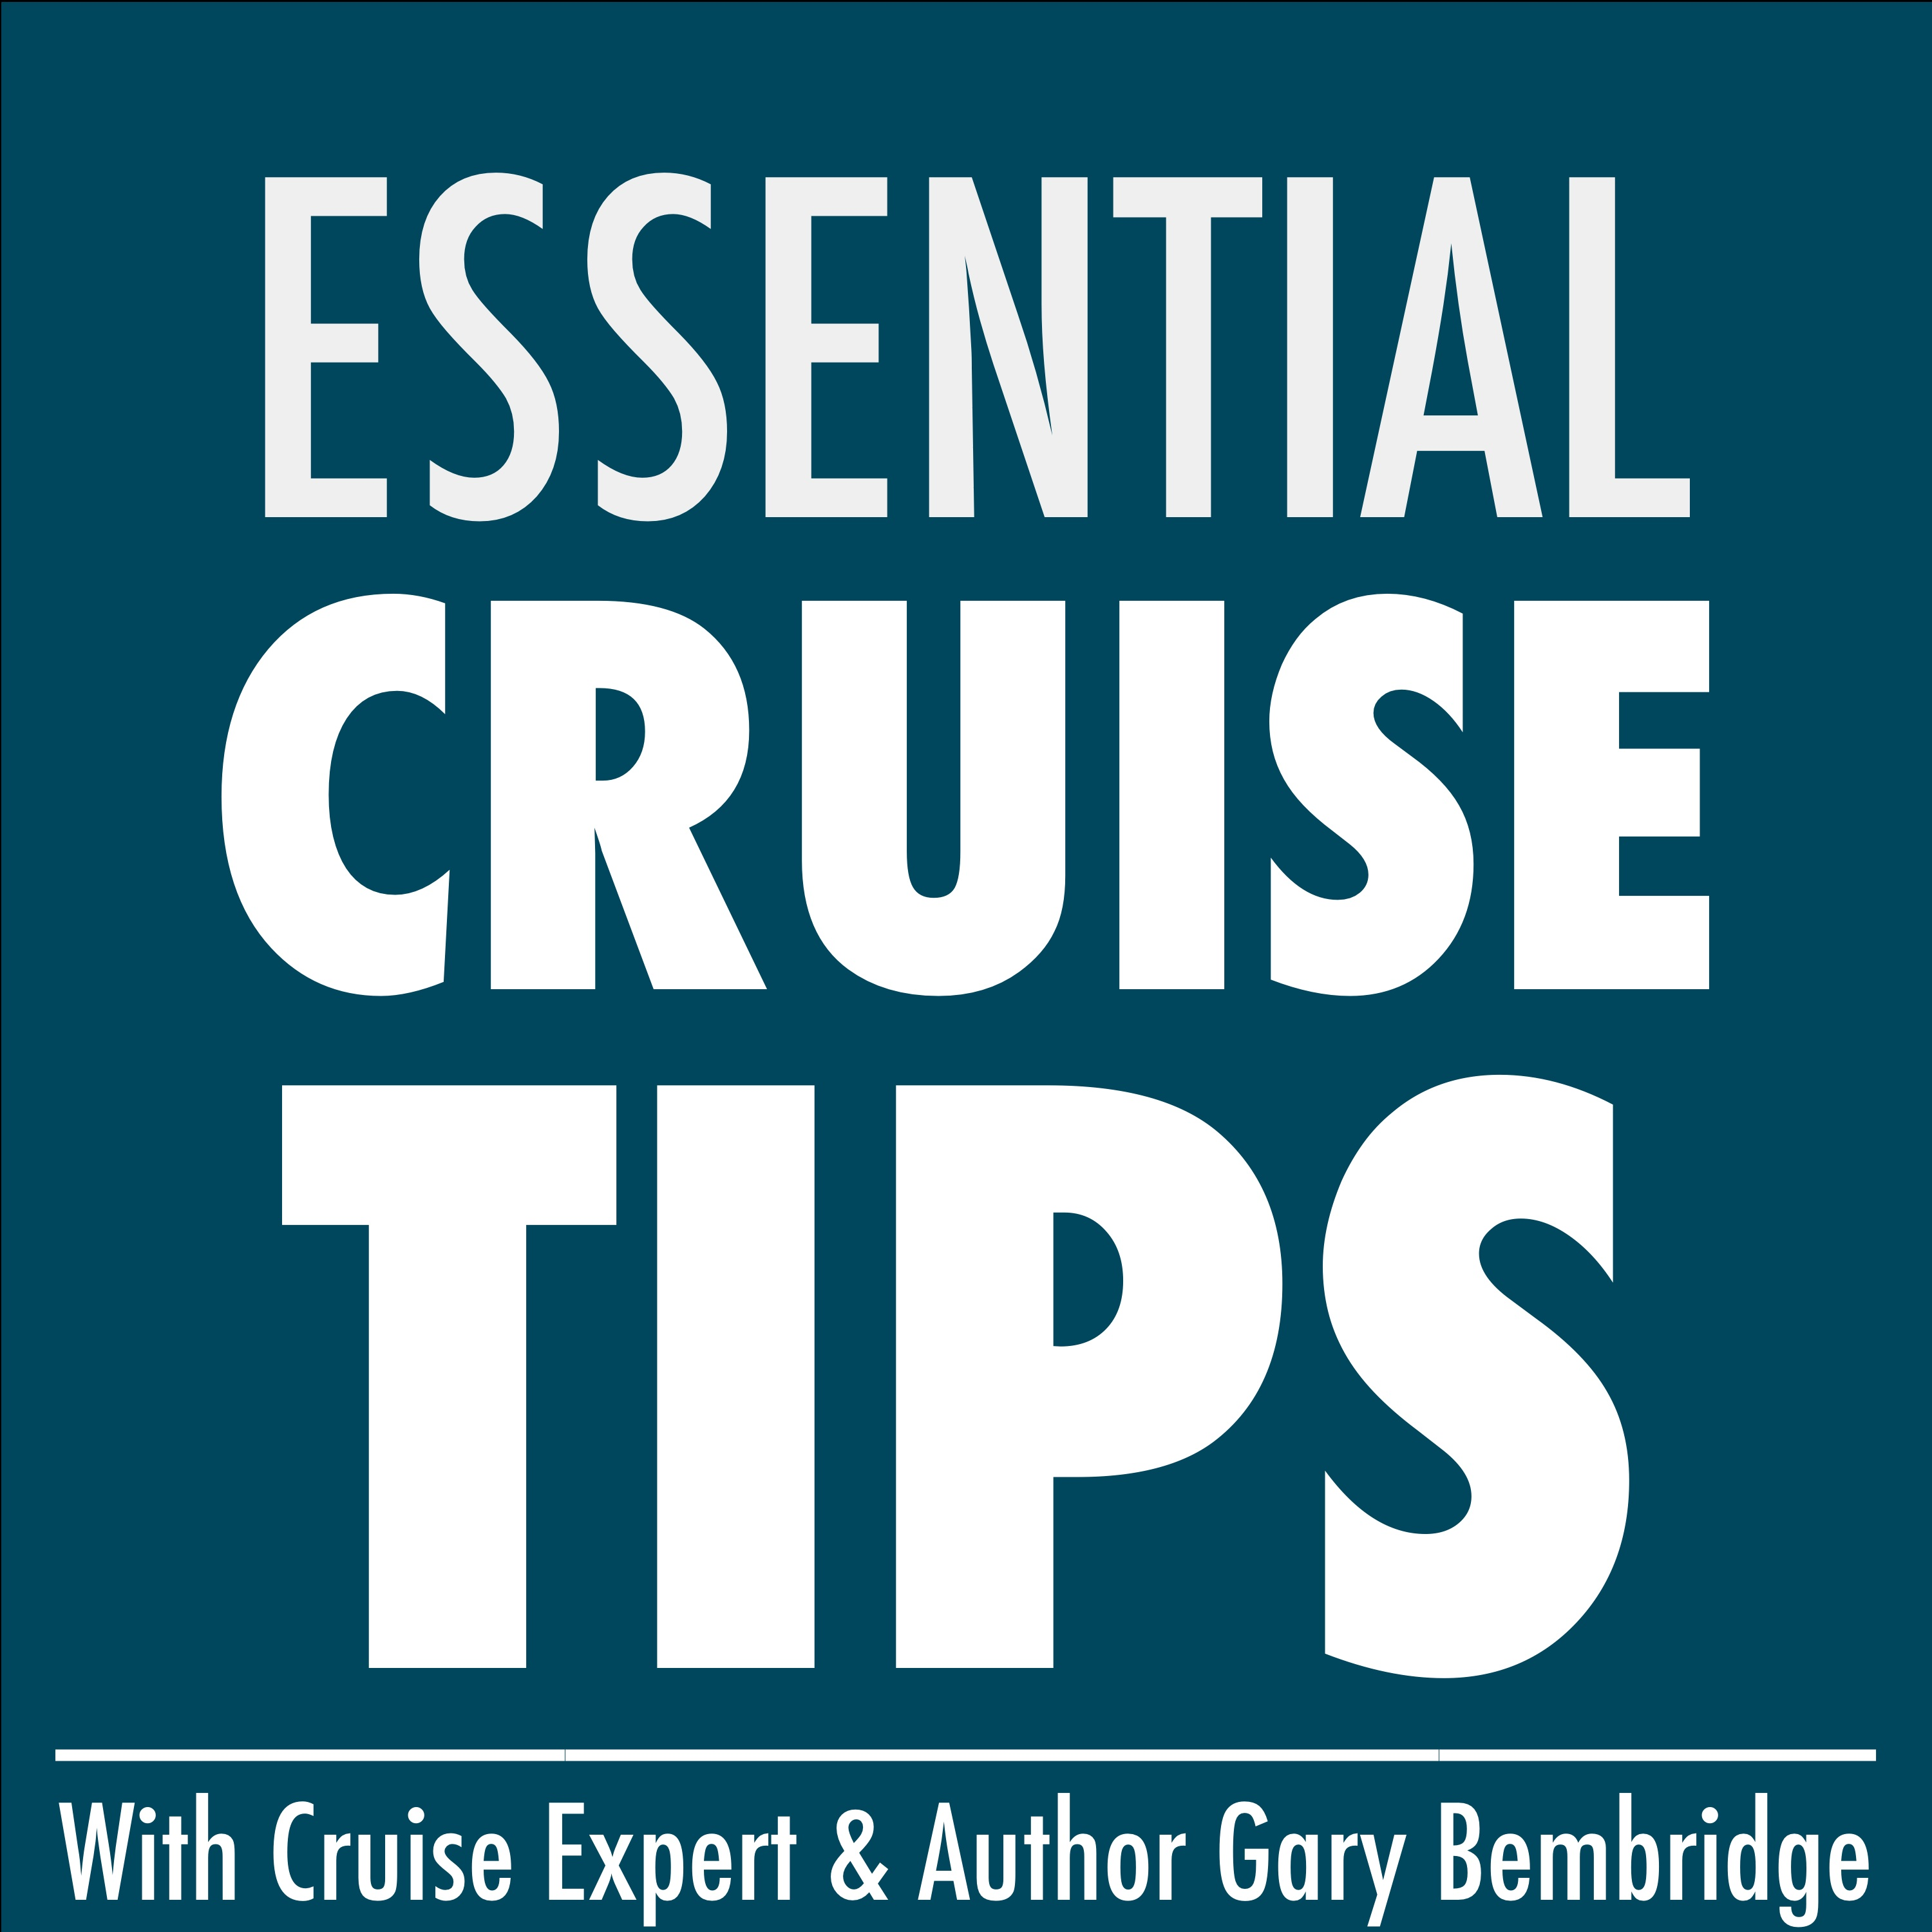 Essential Cruise Tips logo